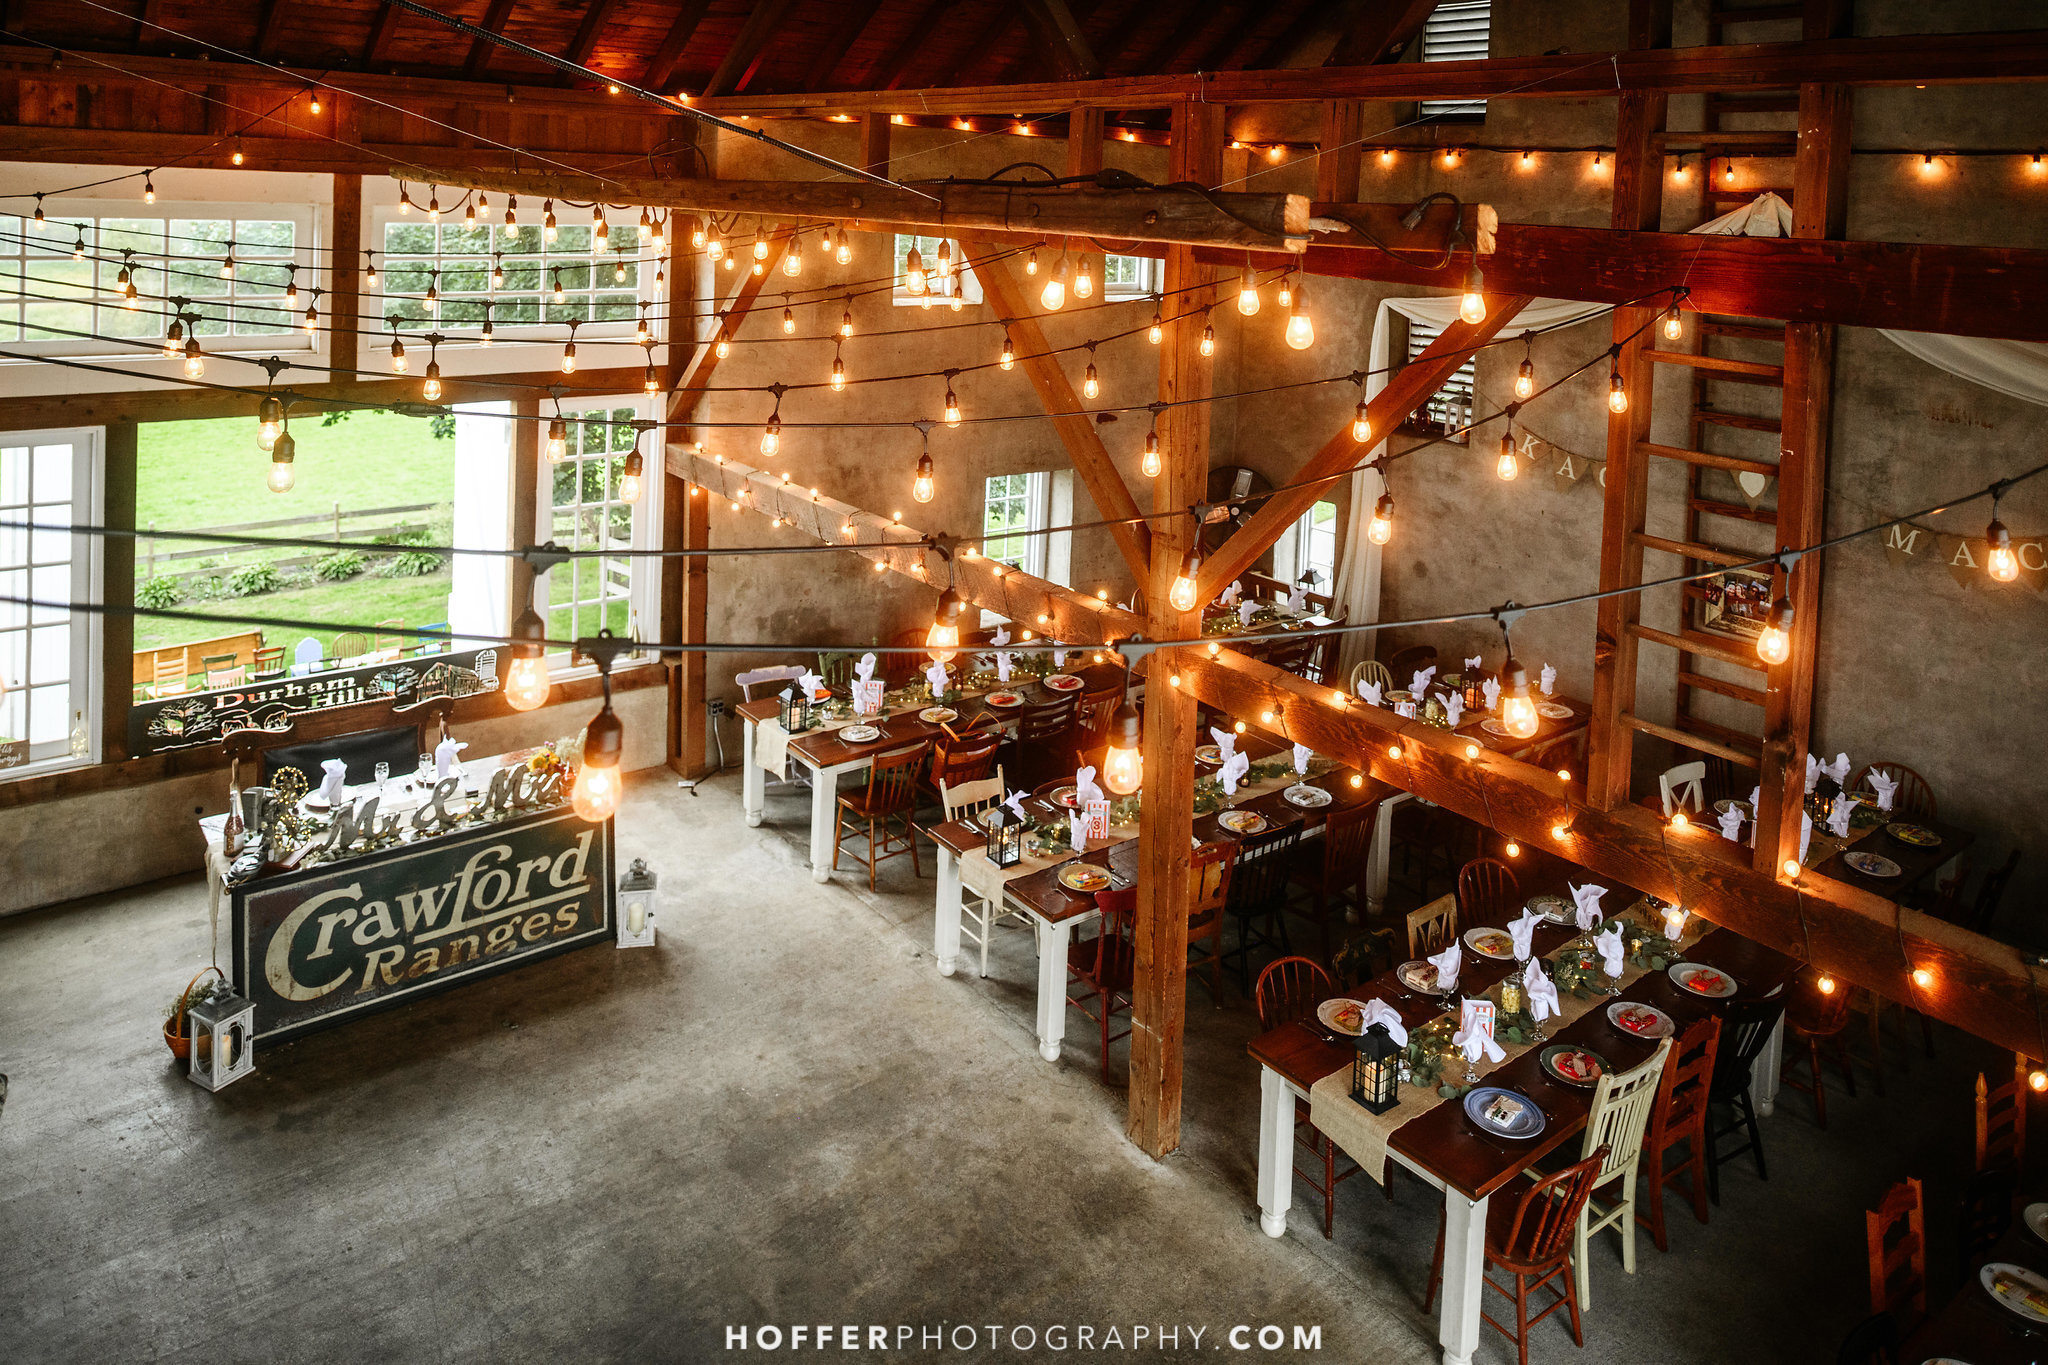 5 -Star rated, award winning barn venue in Bucks Co.   With over 90+ five star reviews, Bucks Happening's 2018 & 2019 Best Wedding Venue, we are among the best of the best in Bucks County for your barn wedding.